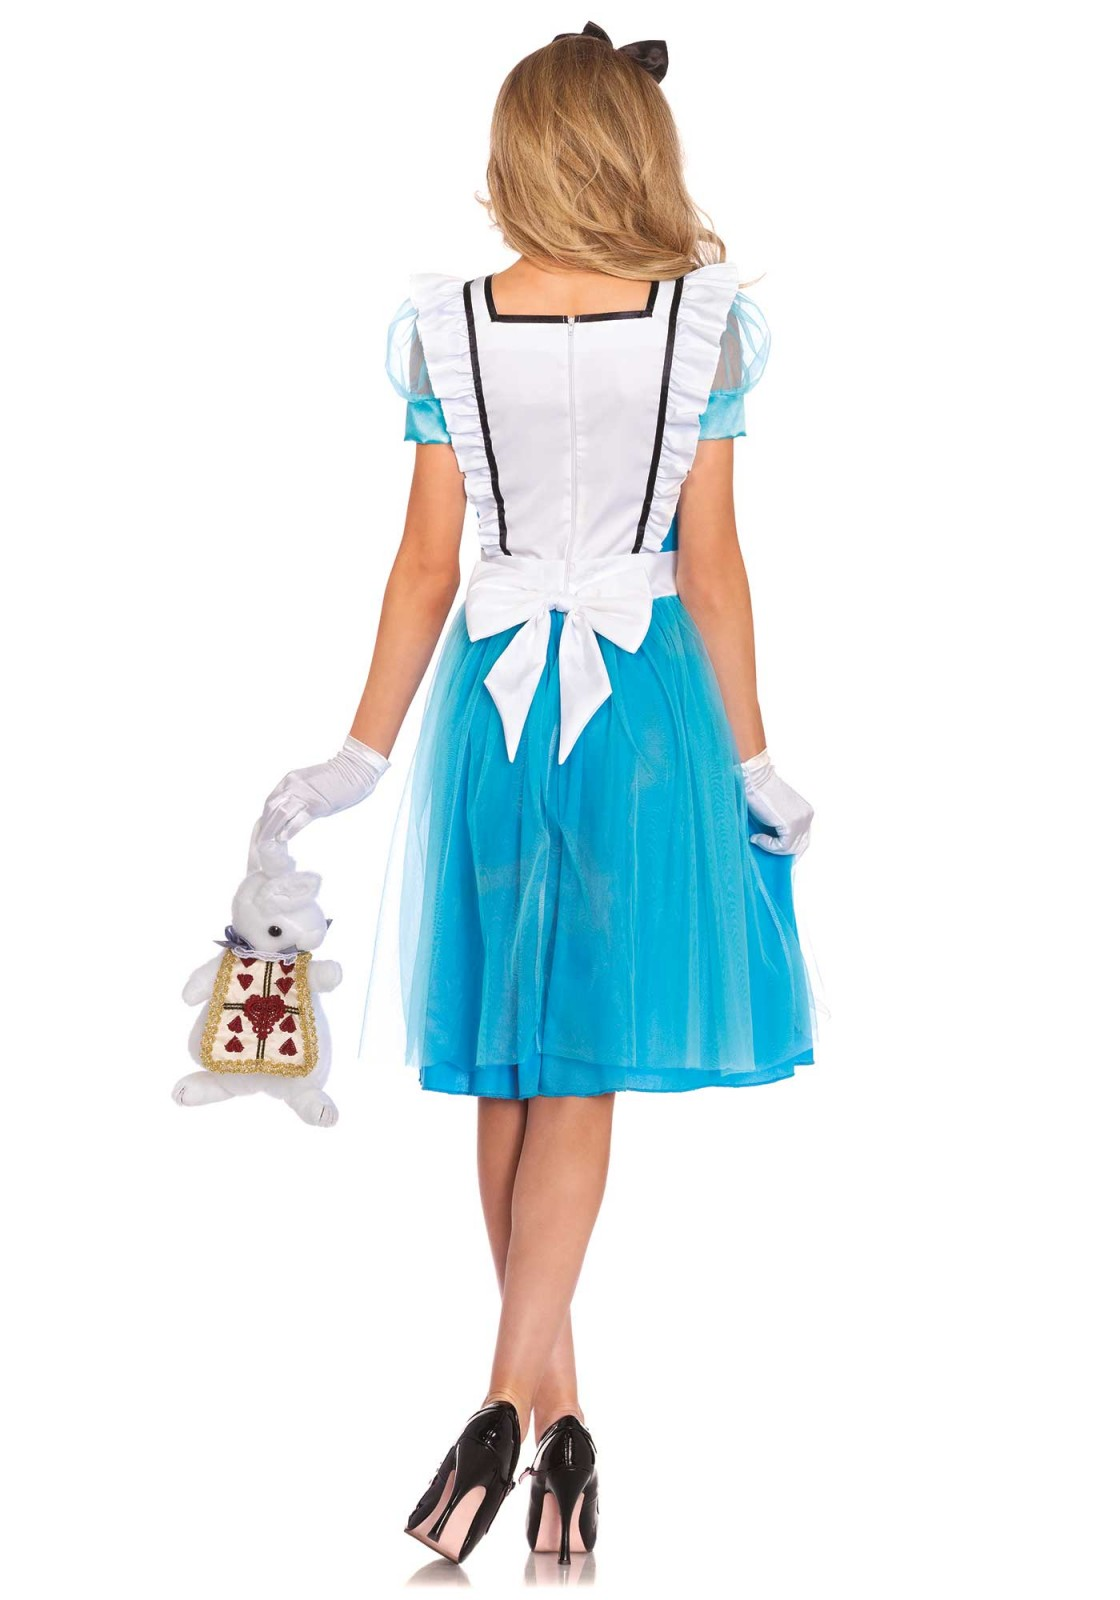 White apron alice in wonderland -  P Follow The White Rabbit You Will Discover A Magical World